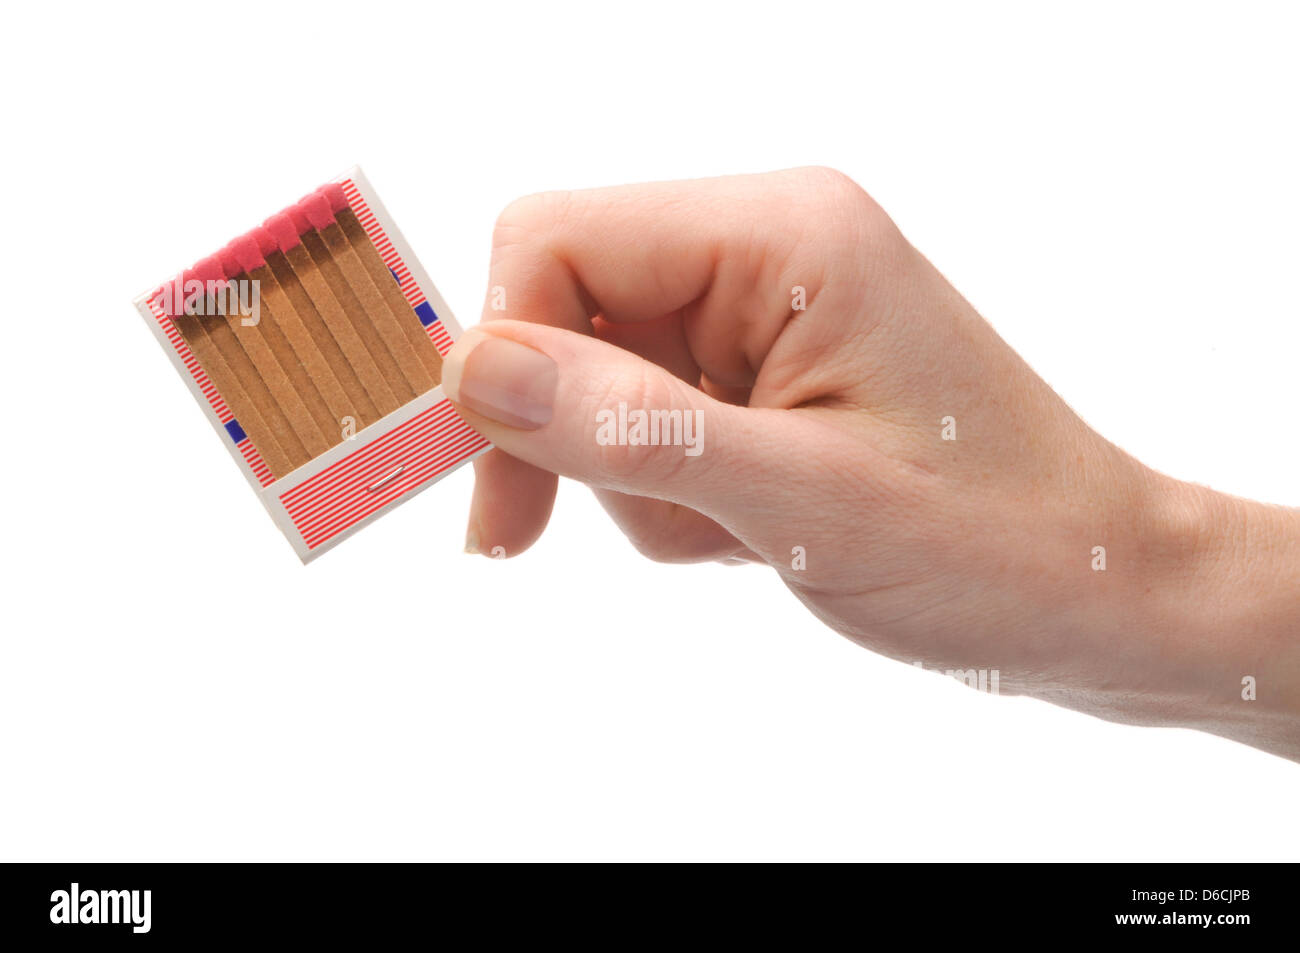 hand holding book of matches - Stock Image